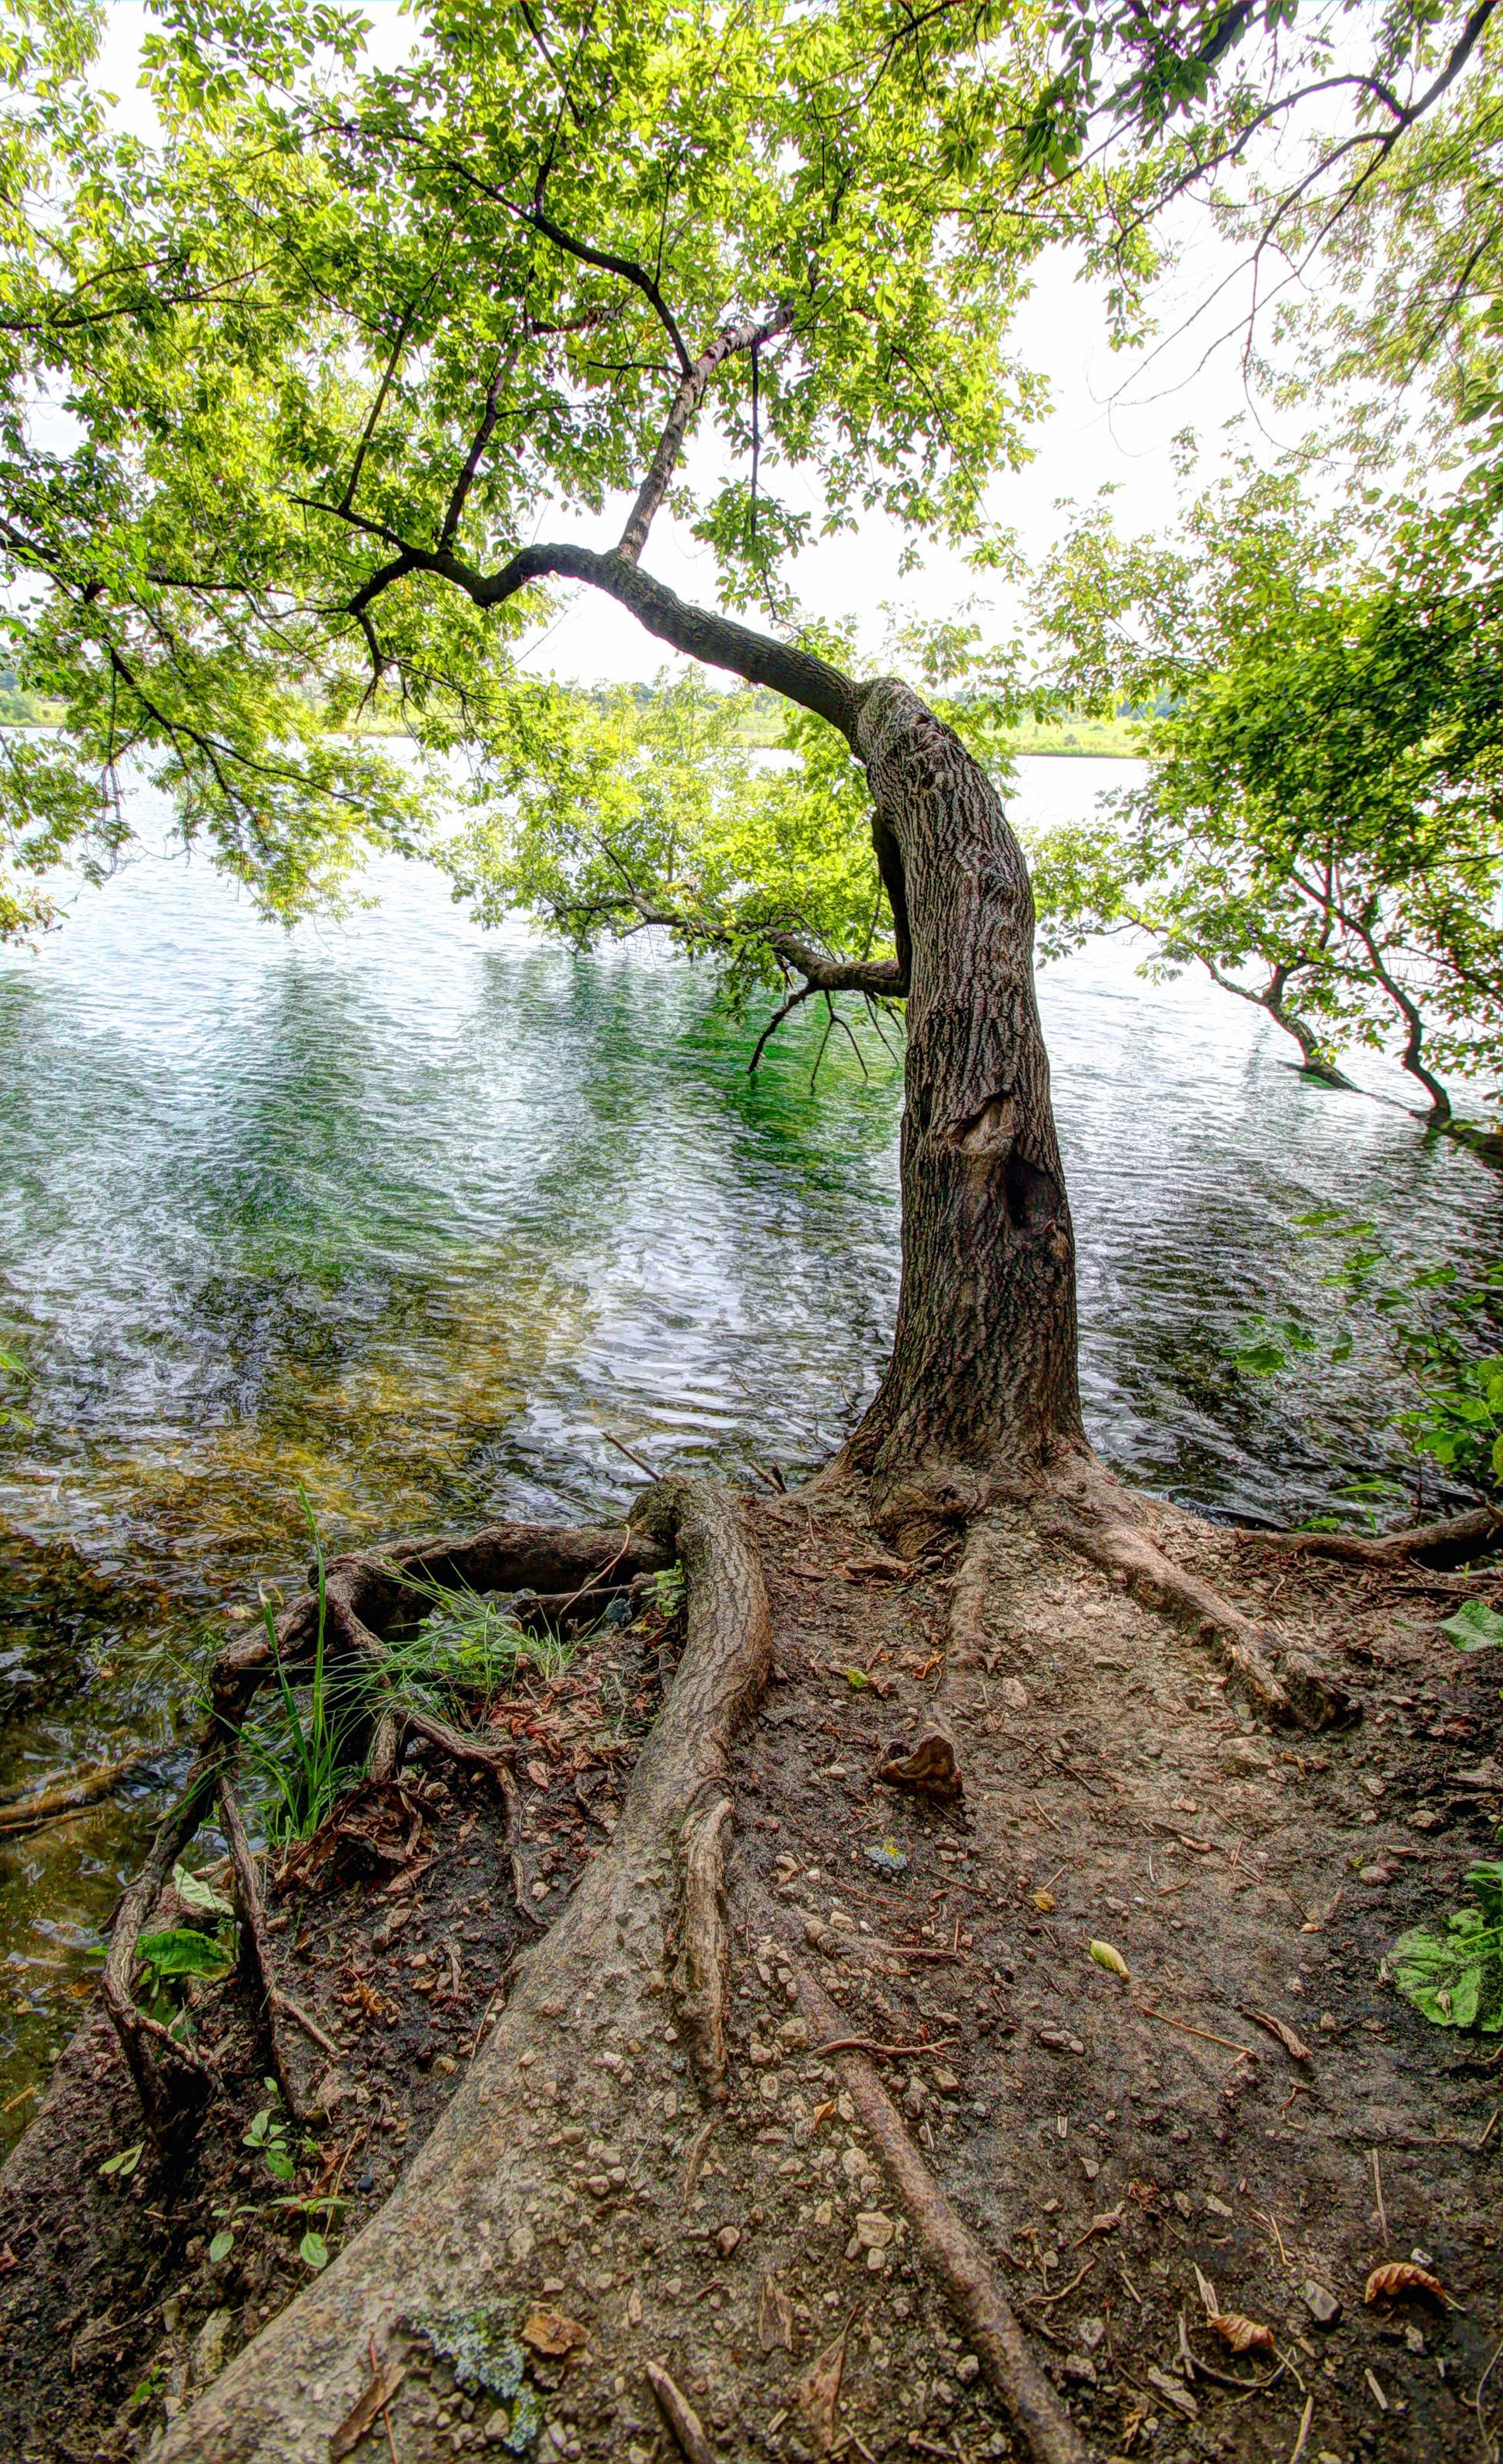 I took this photo while hiking through West Branch Forest Preserve in Carol Stream. This tree caught my eye with its tangled roots and its gravity-defying lean over Deep Quarry Lake. The choppy waters beneath it had a teal-colored hue. I took 3 handheld, vertically-oriented photos using a wide-angle lens and made an HDR composite in Photomatix.